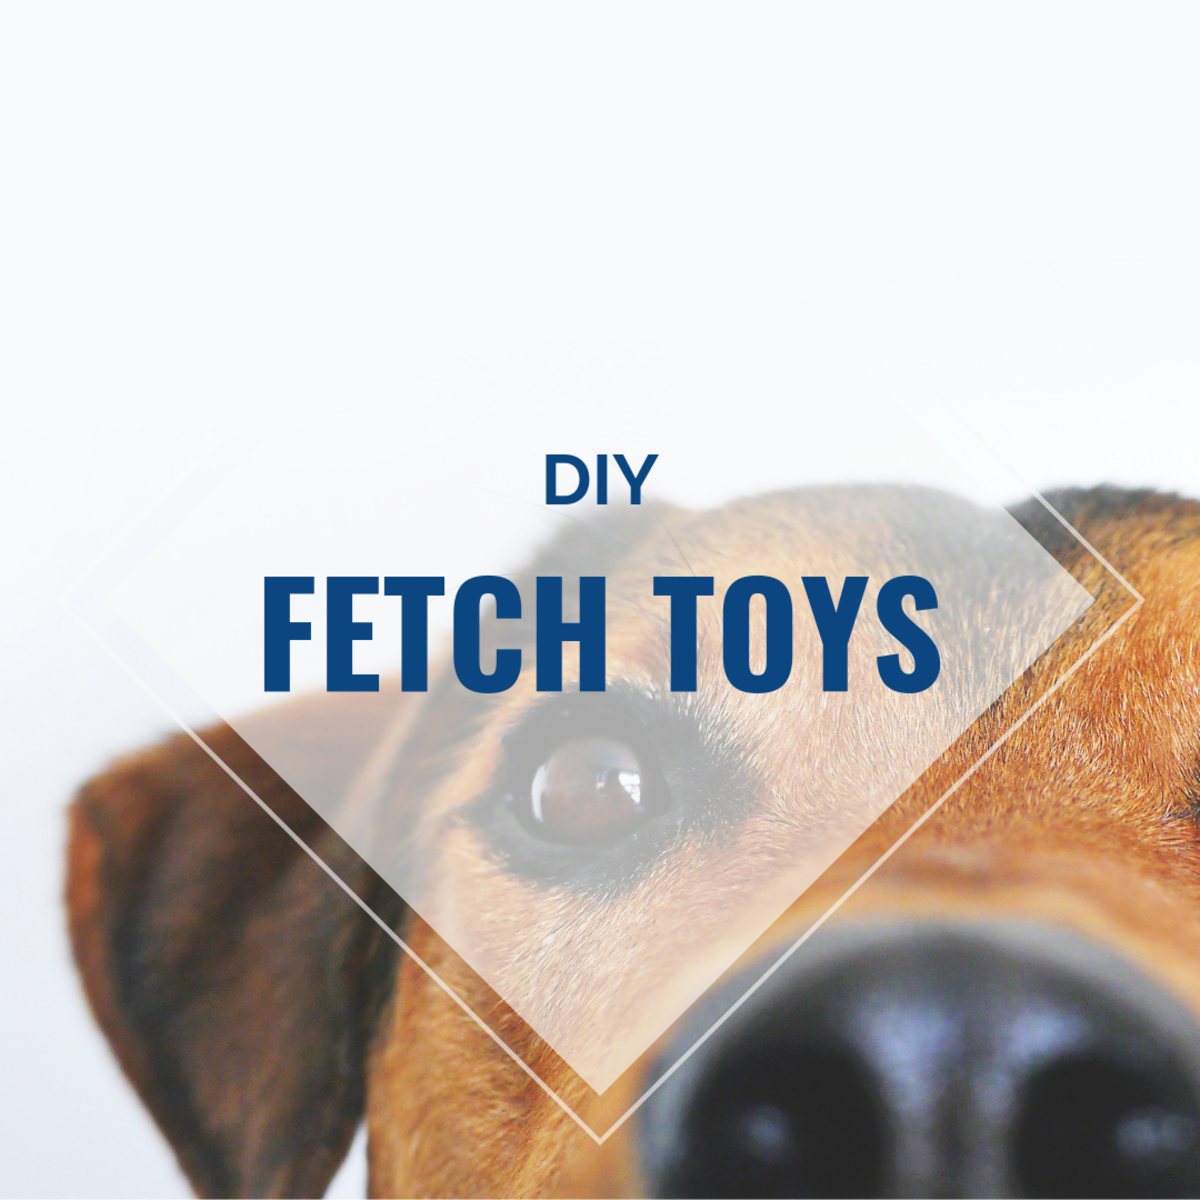 DIY Fetch Toys